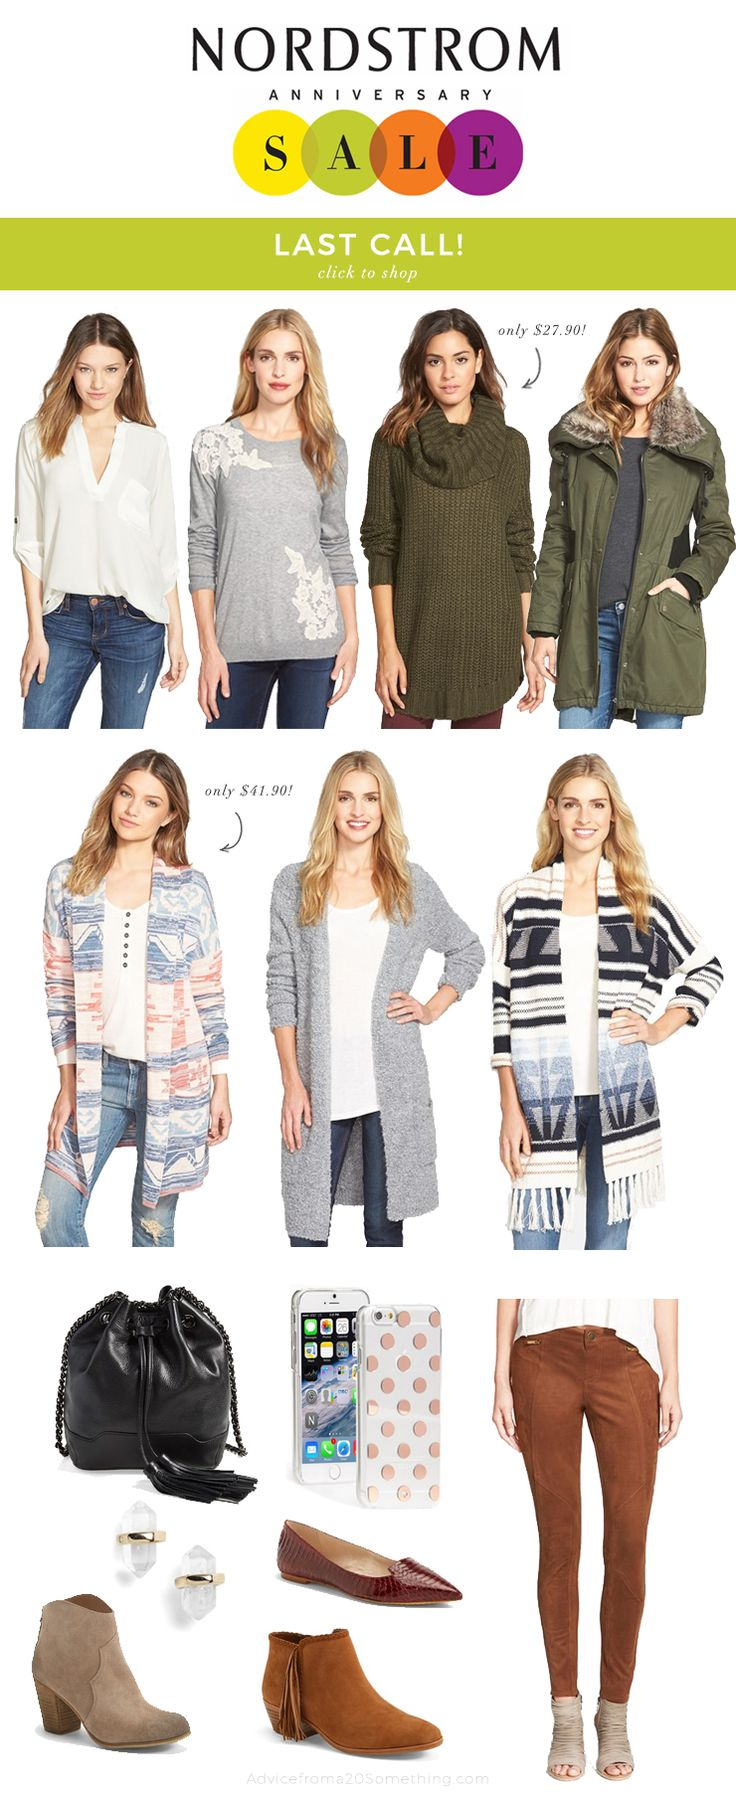 Last Call! Nordstrom Anniversary Sale is Coming to an End